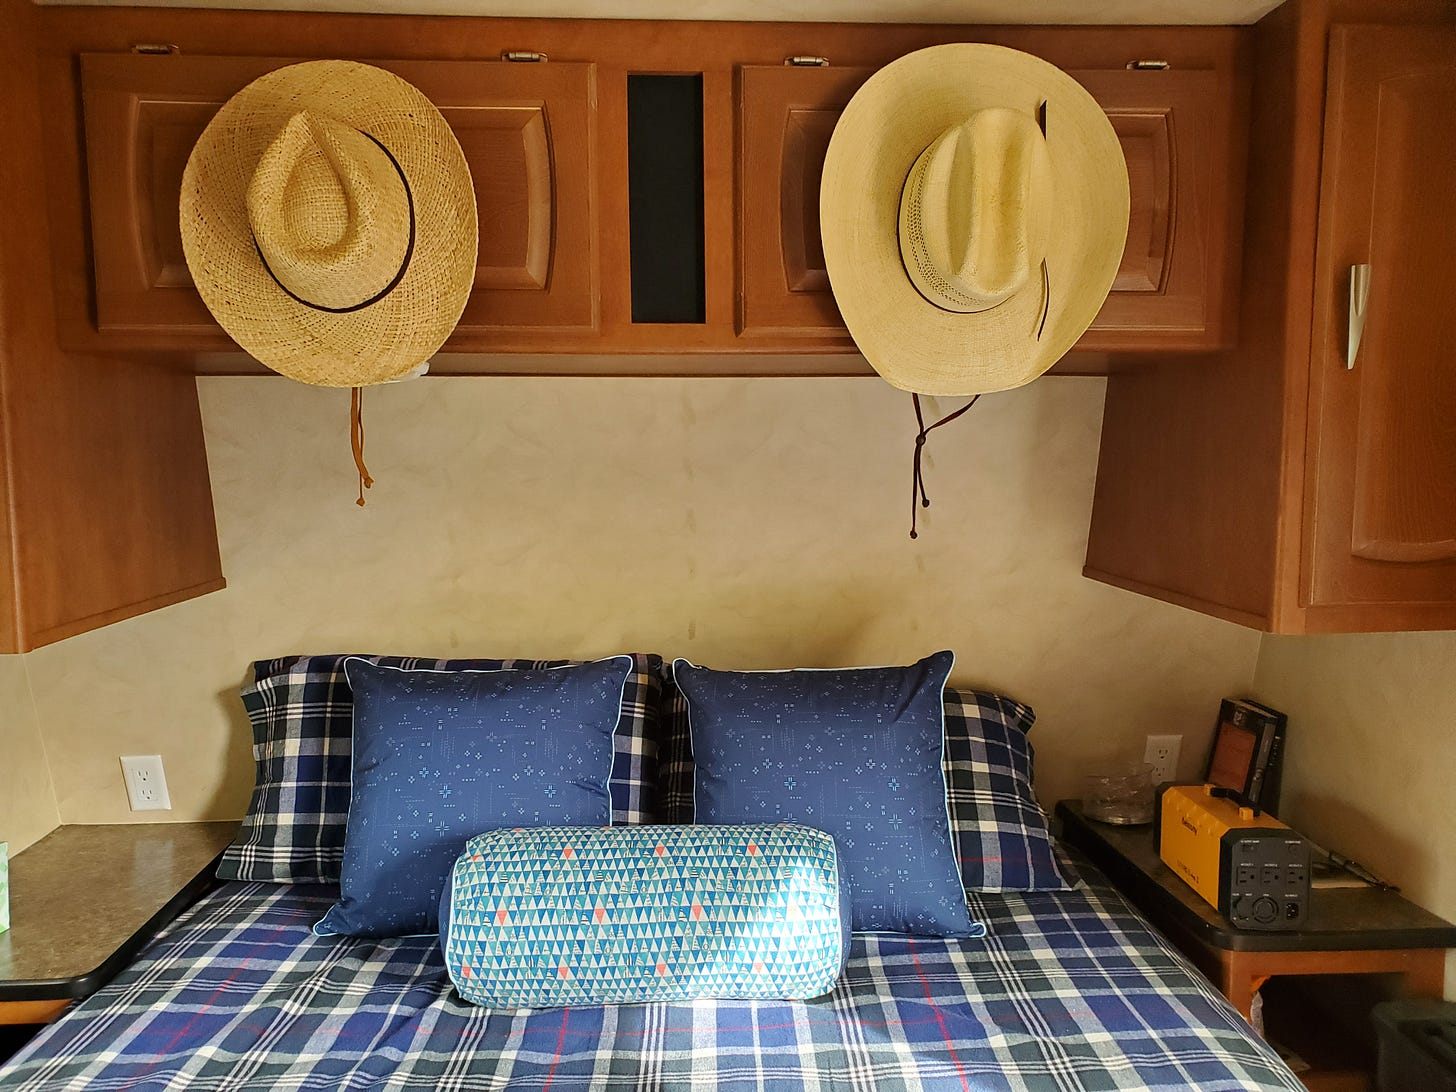 Interior shot of the travel trailer showing a queen bed with plaid sheets and pillows in various blue fabrics. Above the bed two cowboy hats hang his and hers style above from the upper cabinet.